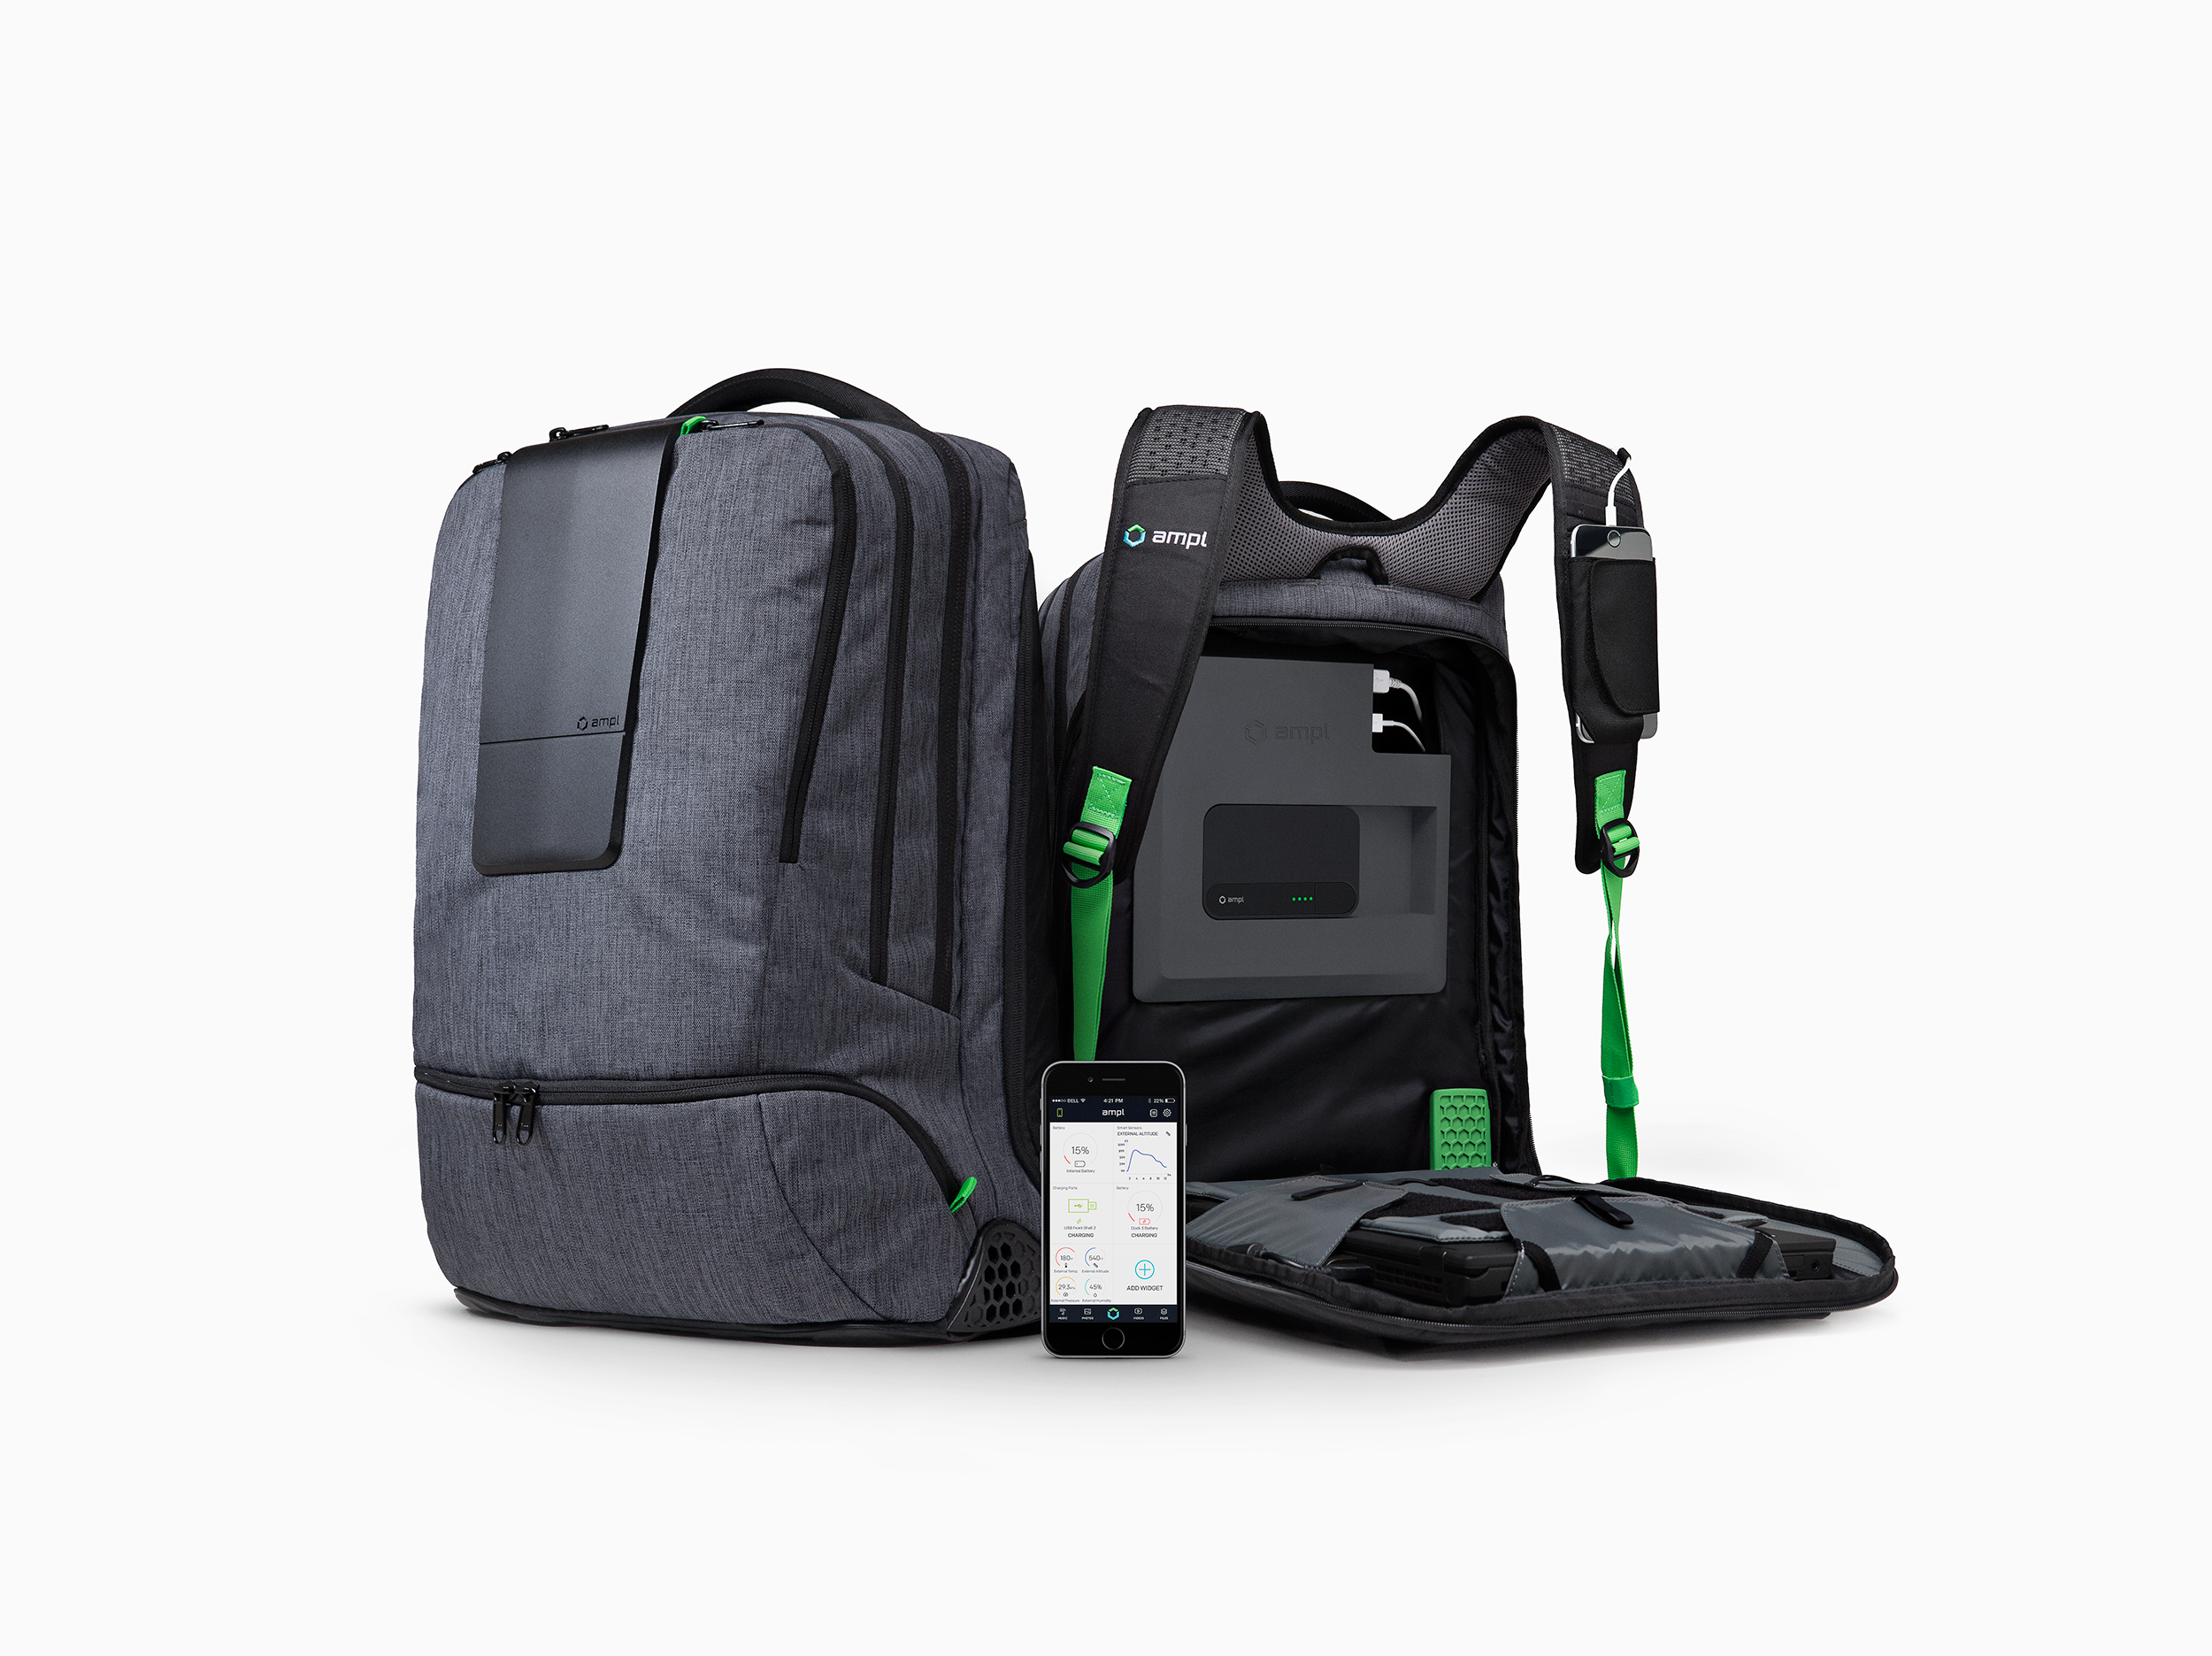 Best Tech Backpacks CG3k6KW0